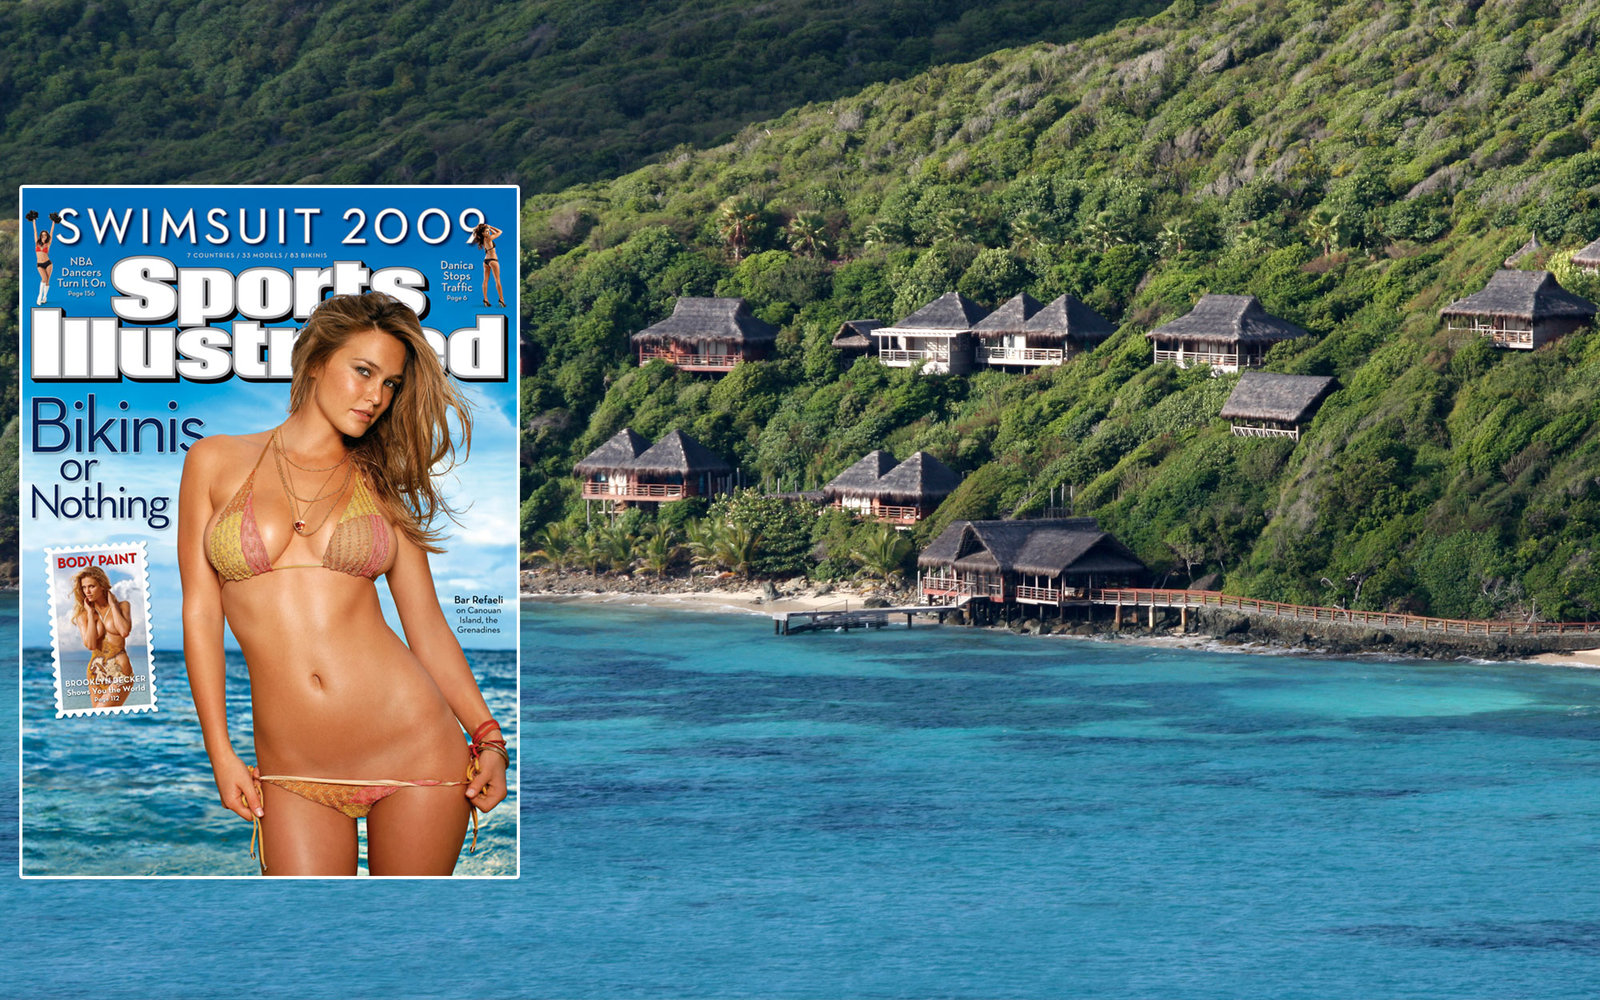 Sports Illustrated Swimsuit Issue 2009